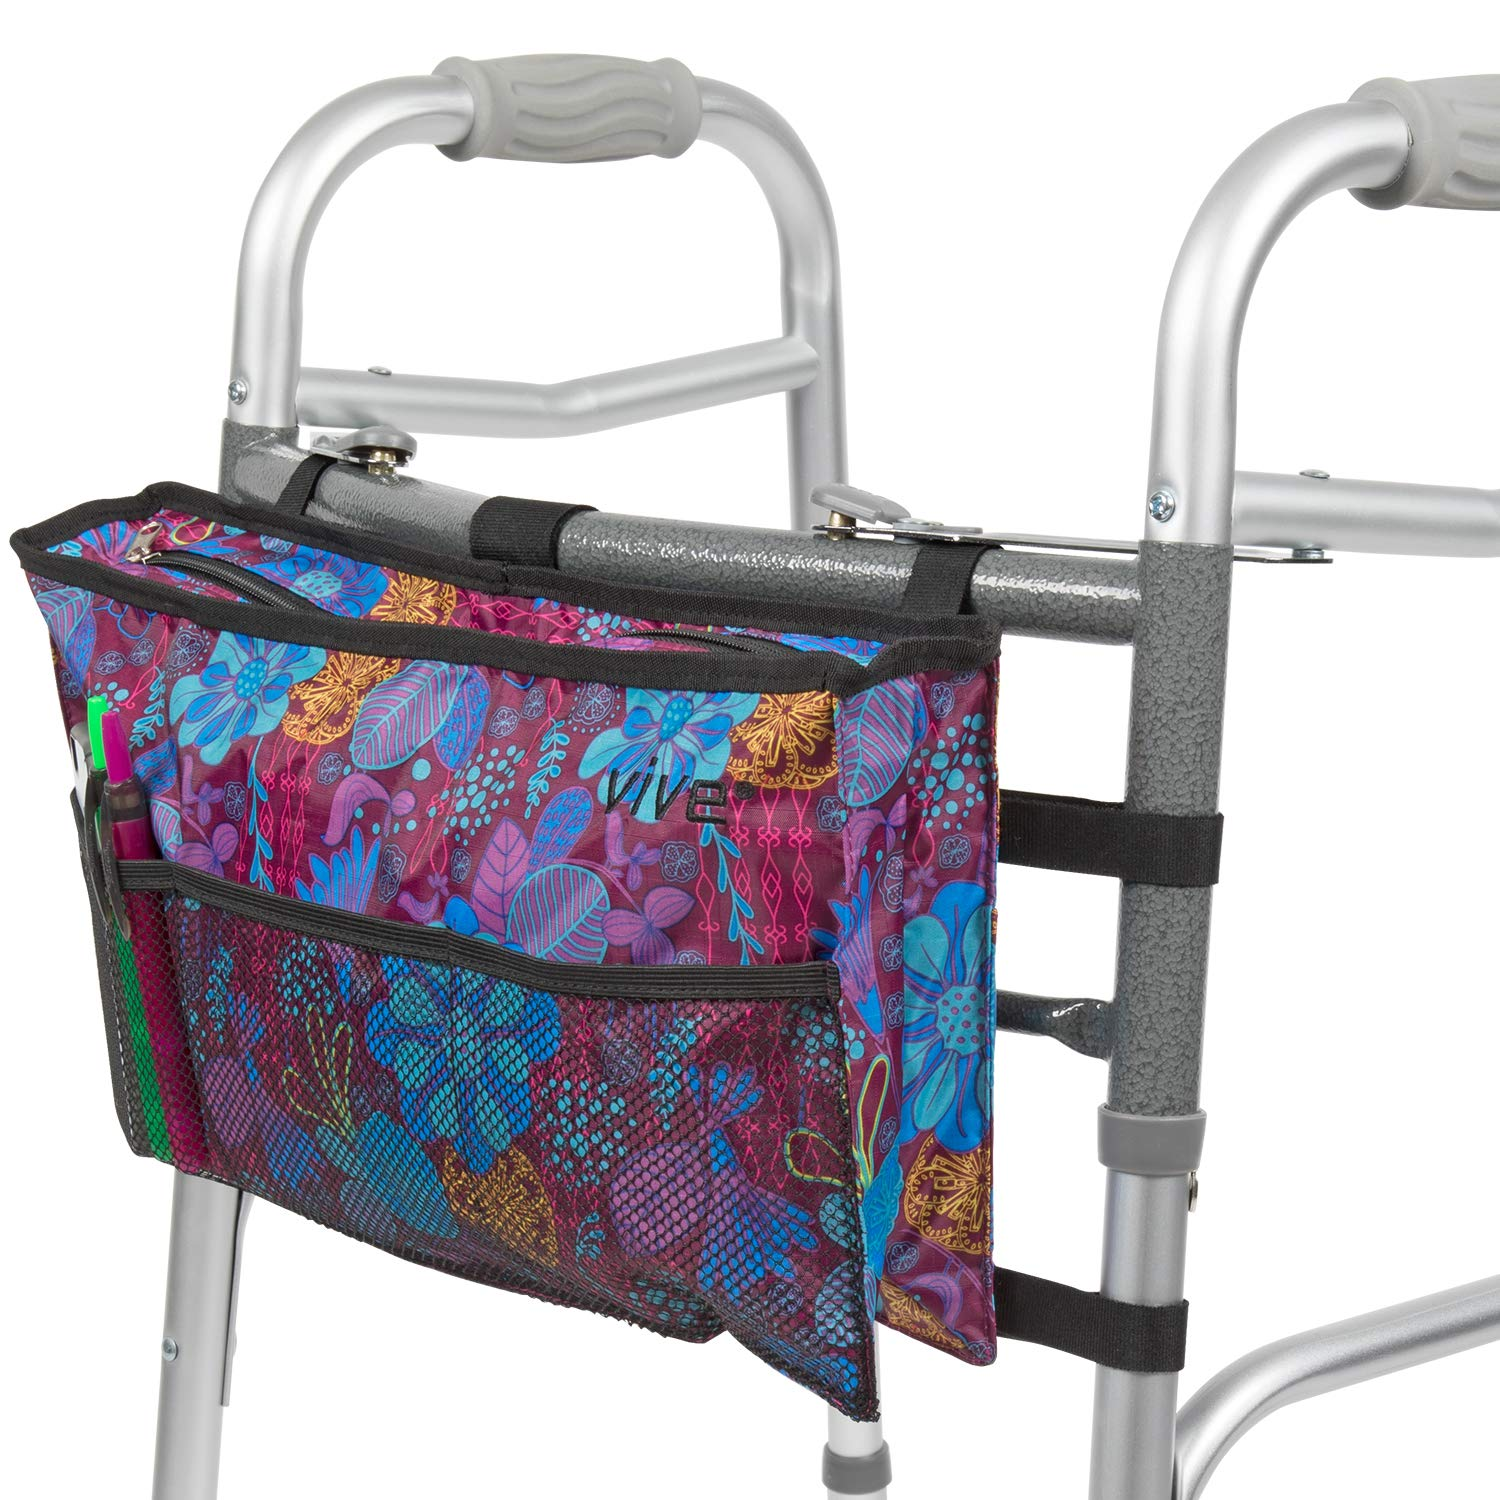 e2756755208 Amazon.com: Vive Walker Bag - Water Resistant Accessory Basket Provides  Hands Free Storage for Folding Walkers - Attachment Fits Wide and Narrow  Styles ...